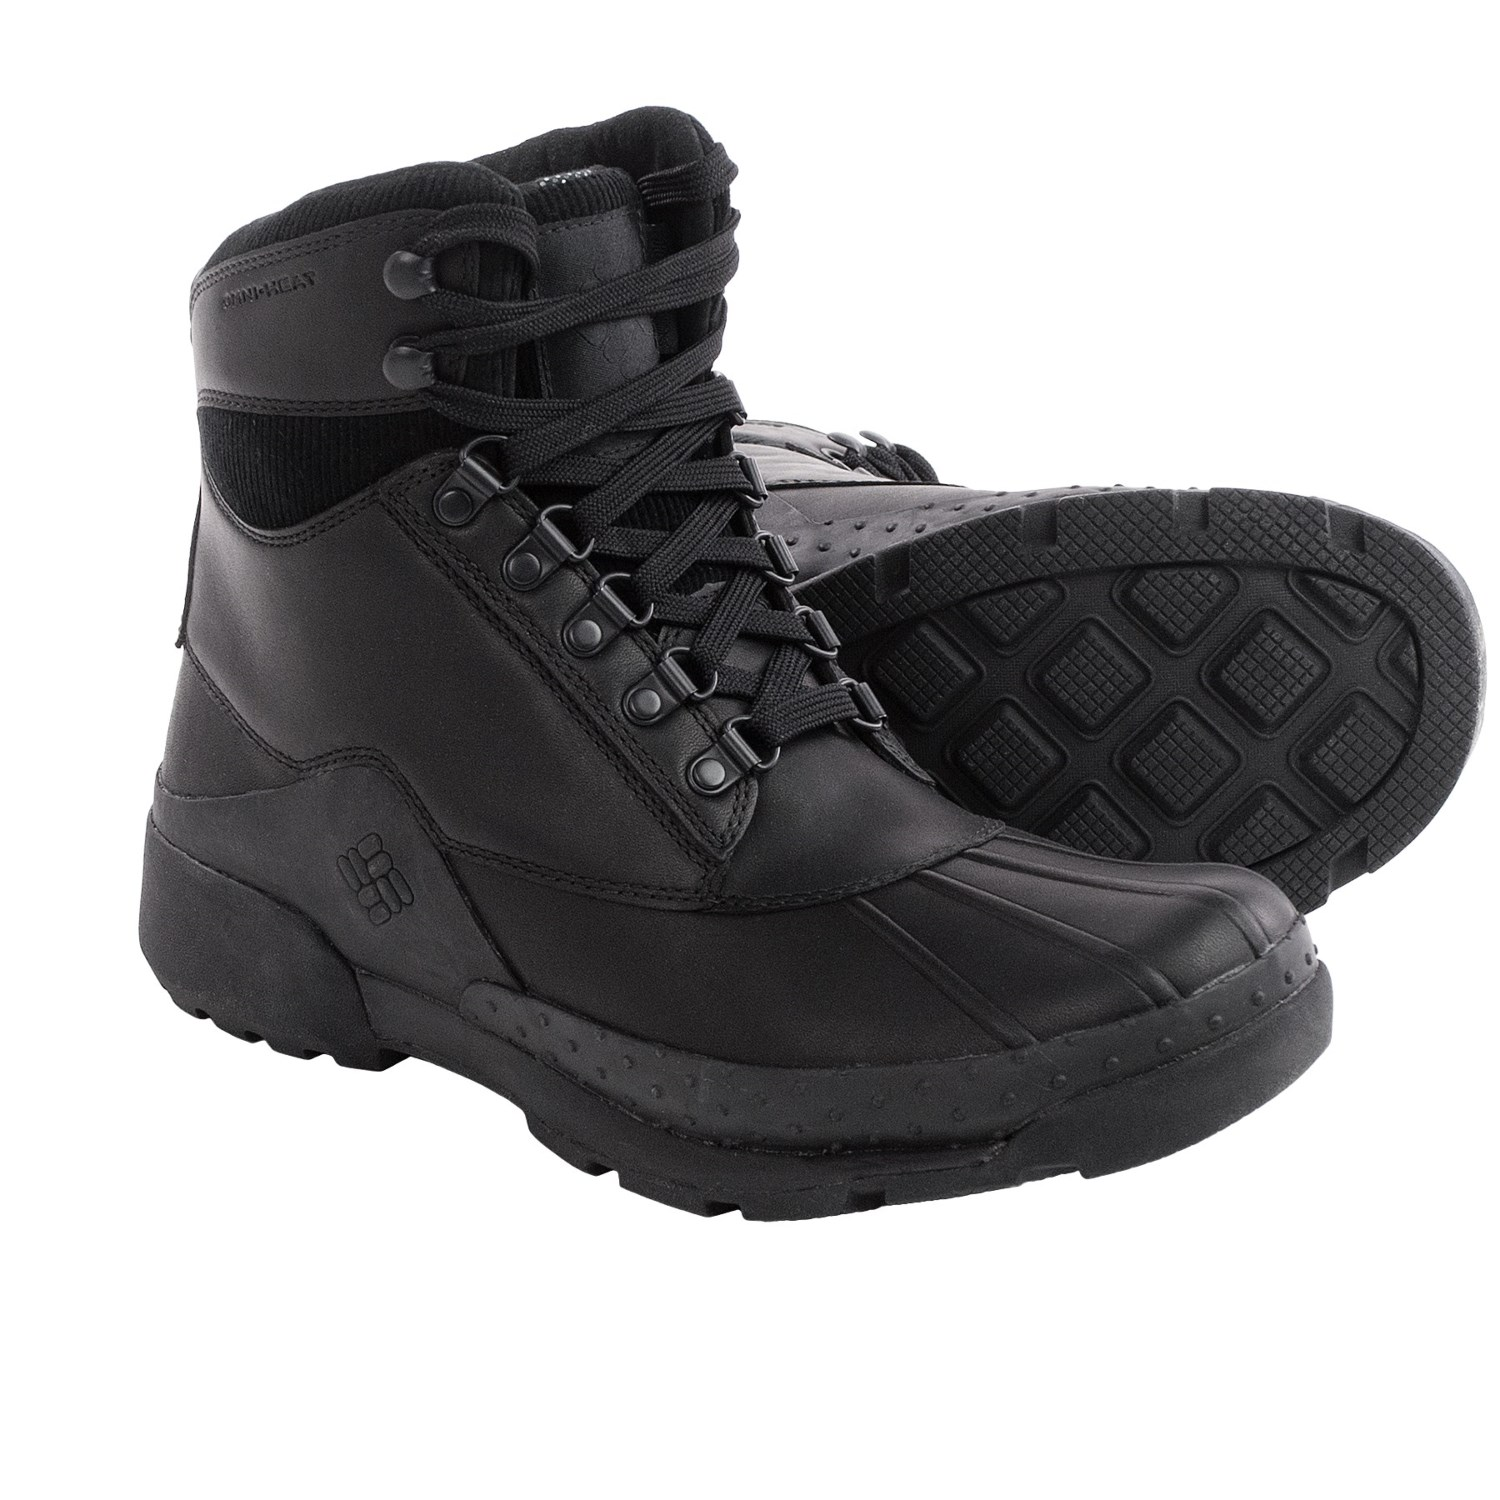 Mens Snow Boots Clearance 22DNrYWm